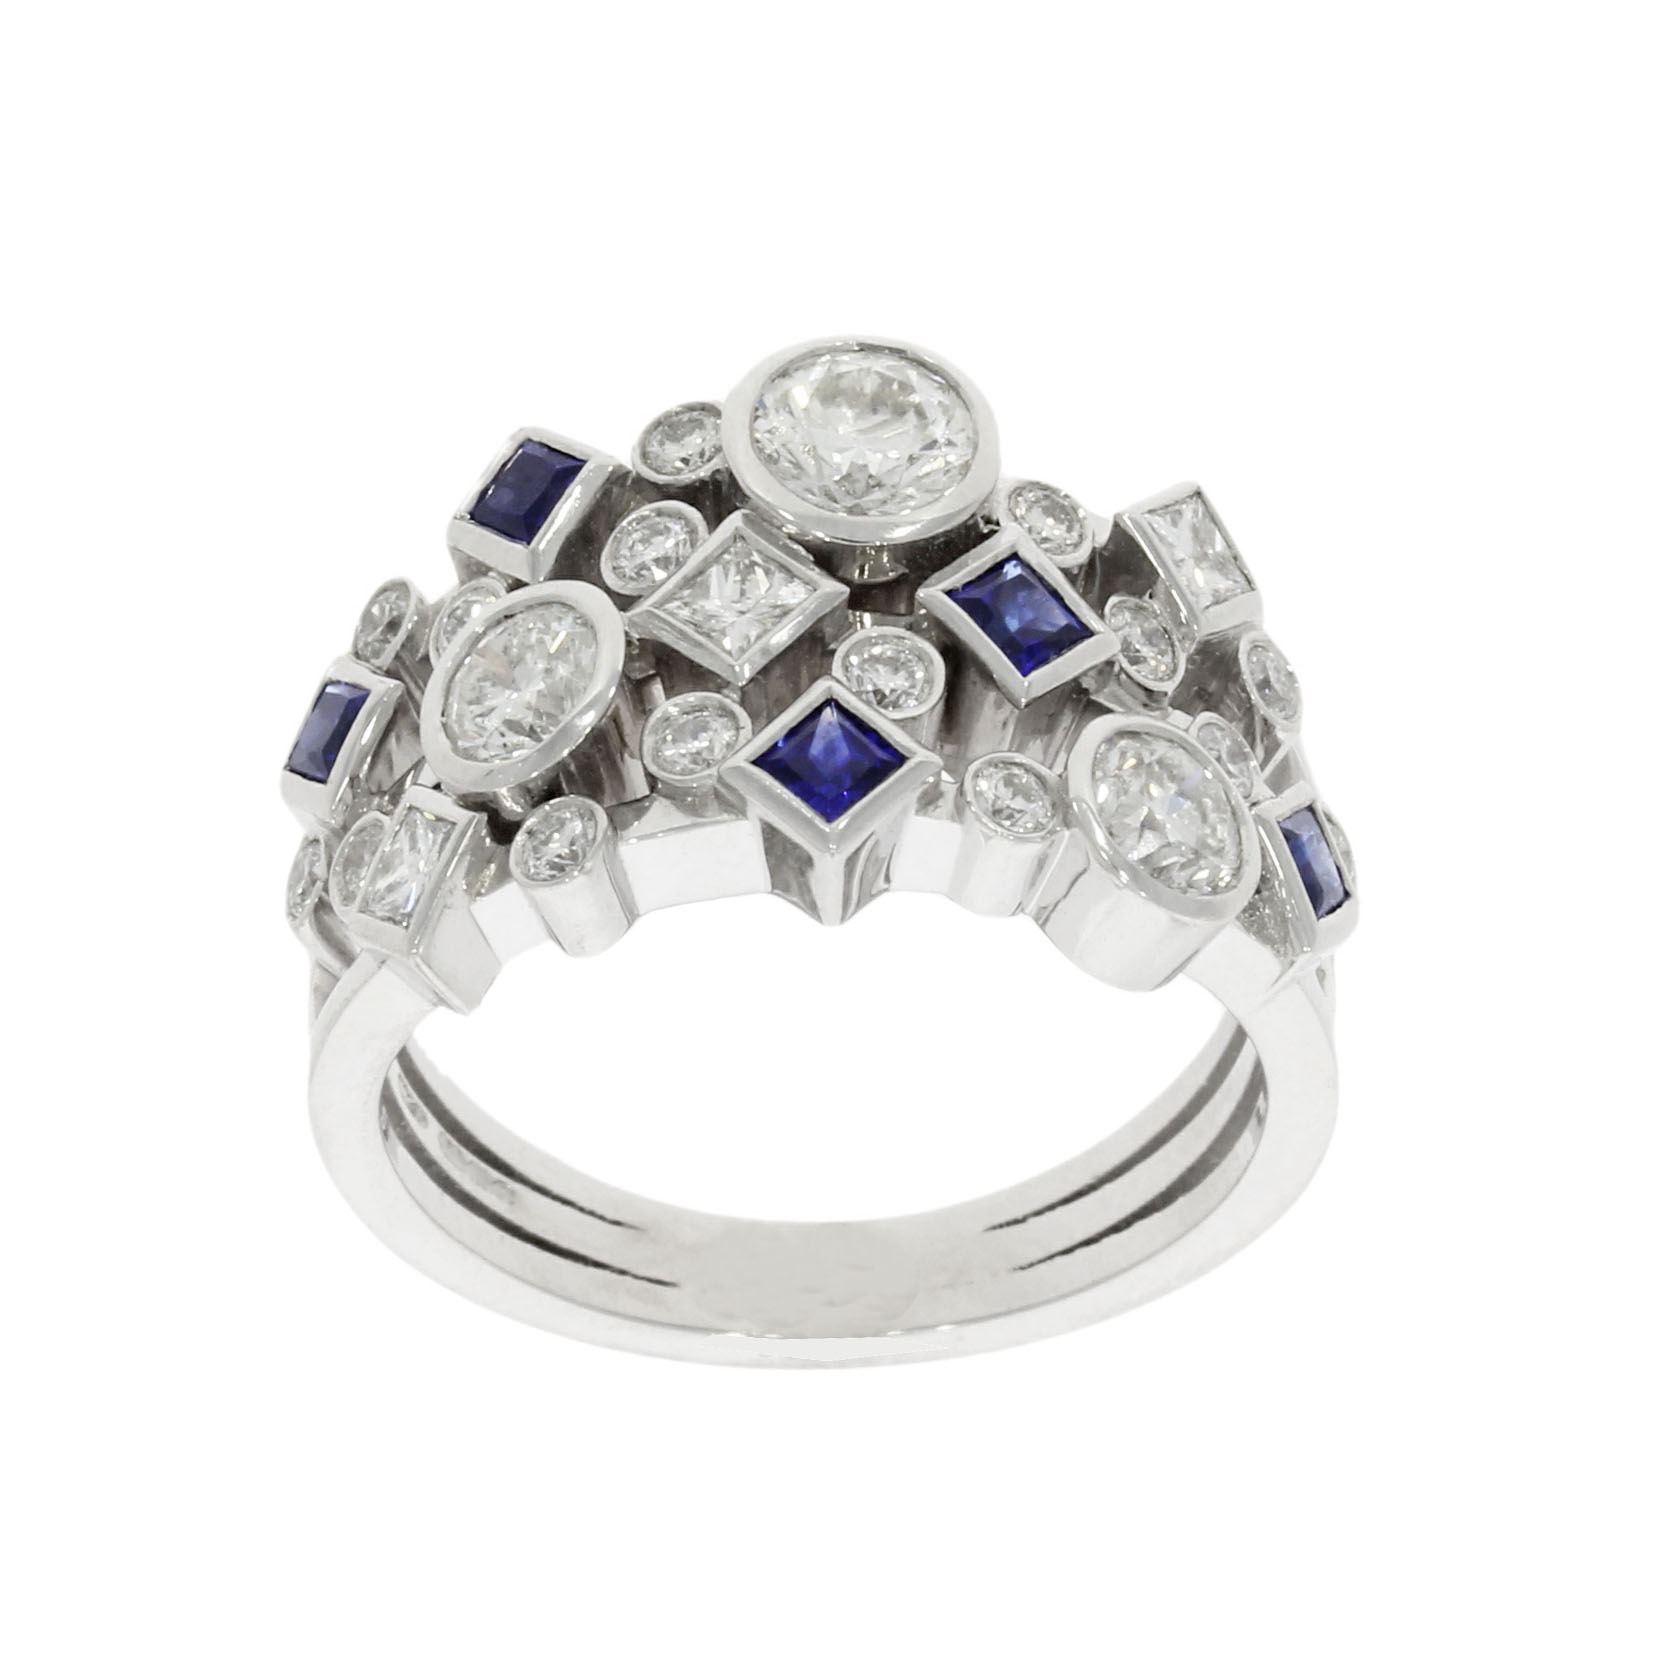 18ct White Gold Diamond Sapphire Dress Ring